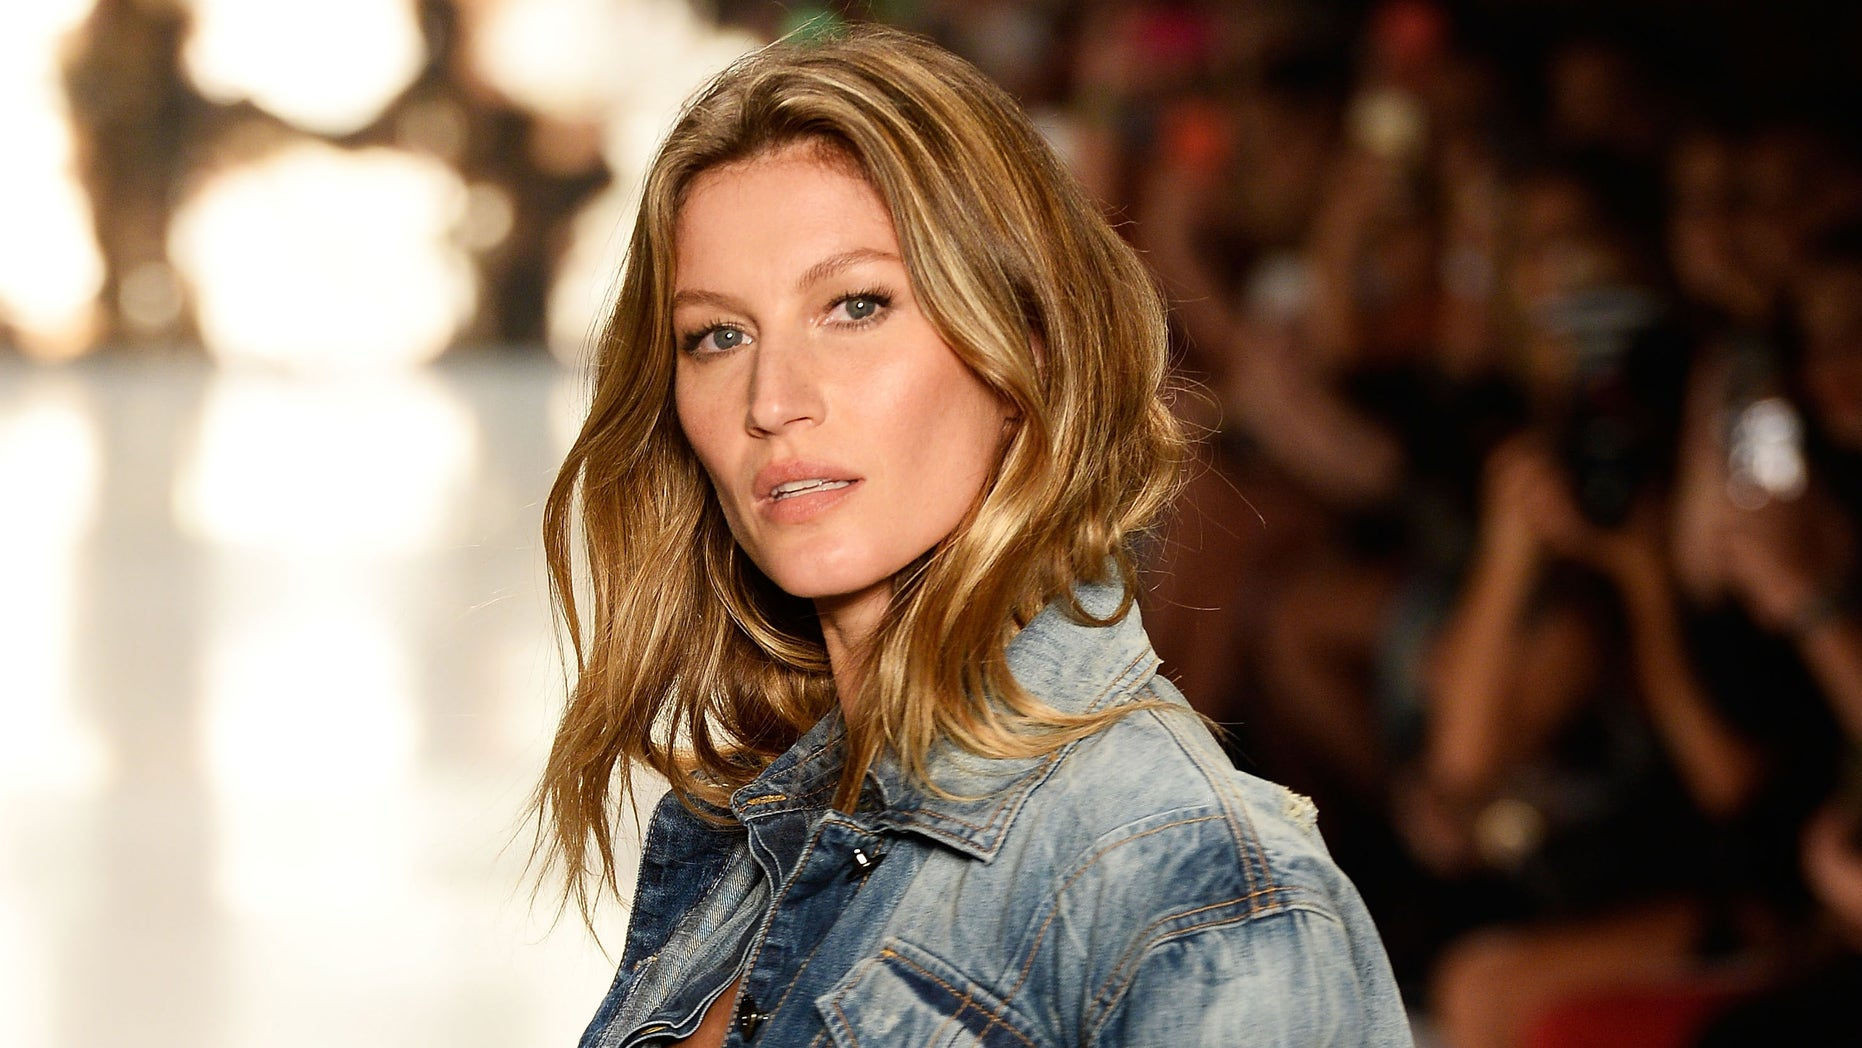 Fashion style Bundchens gisele book worth $700 sold out! for lady